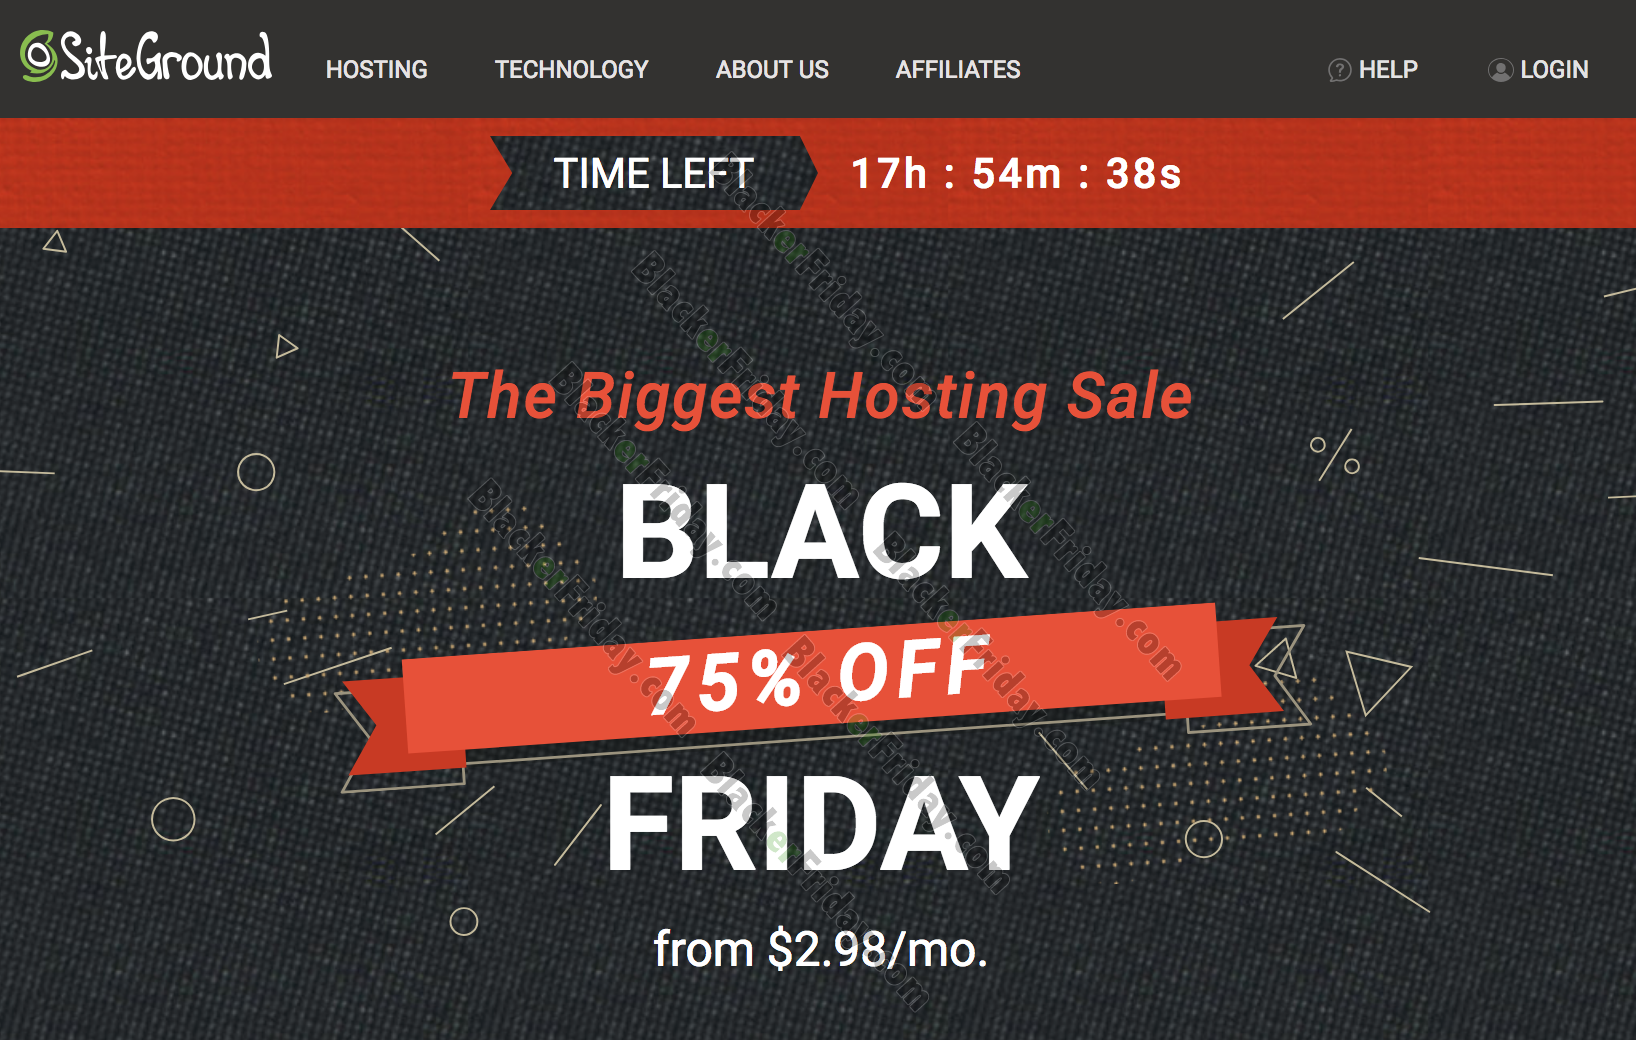 Siteground Black Friday 2020 Sale What To Expect Blacker Friday